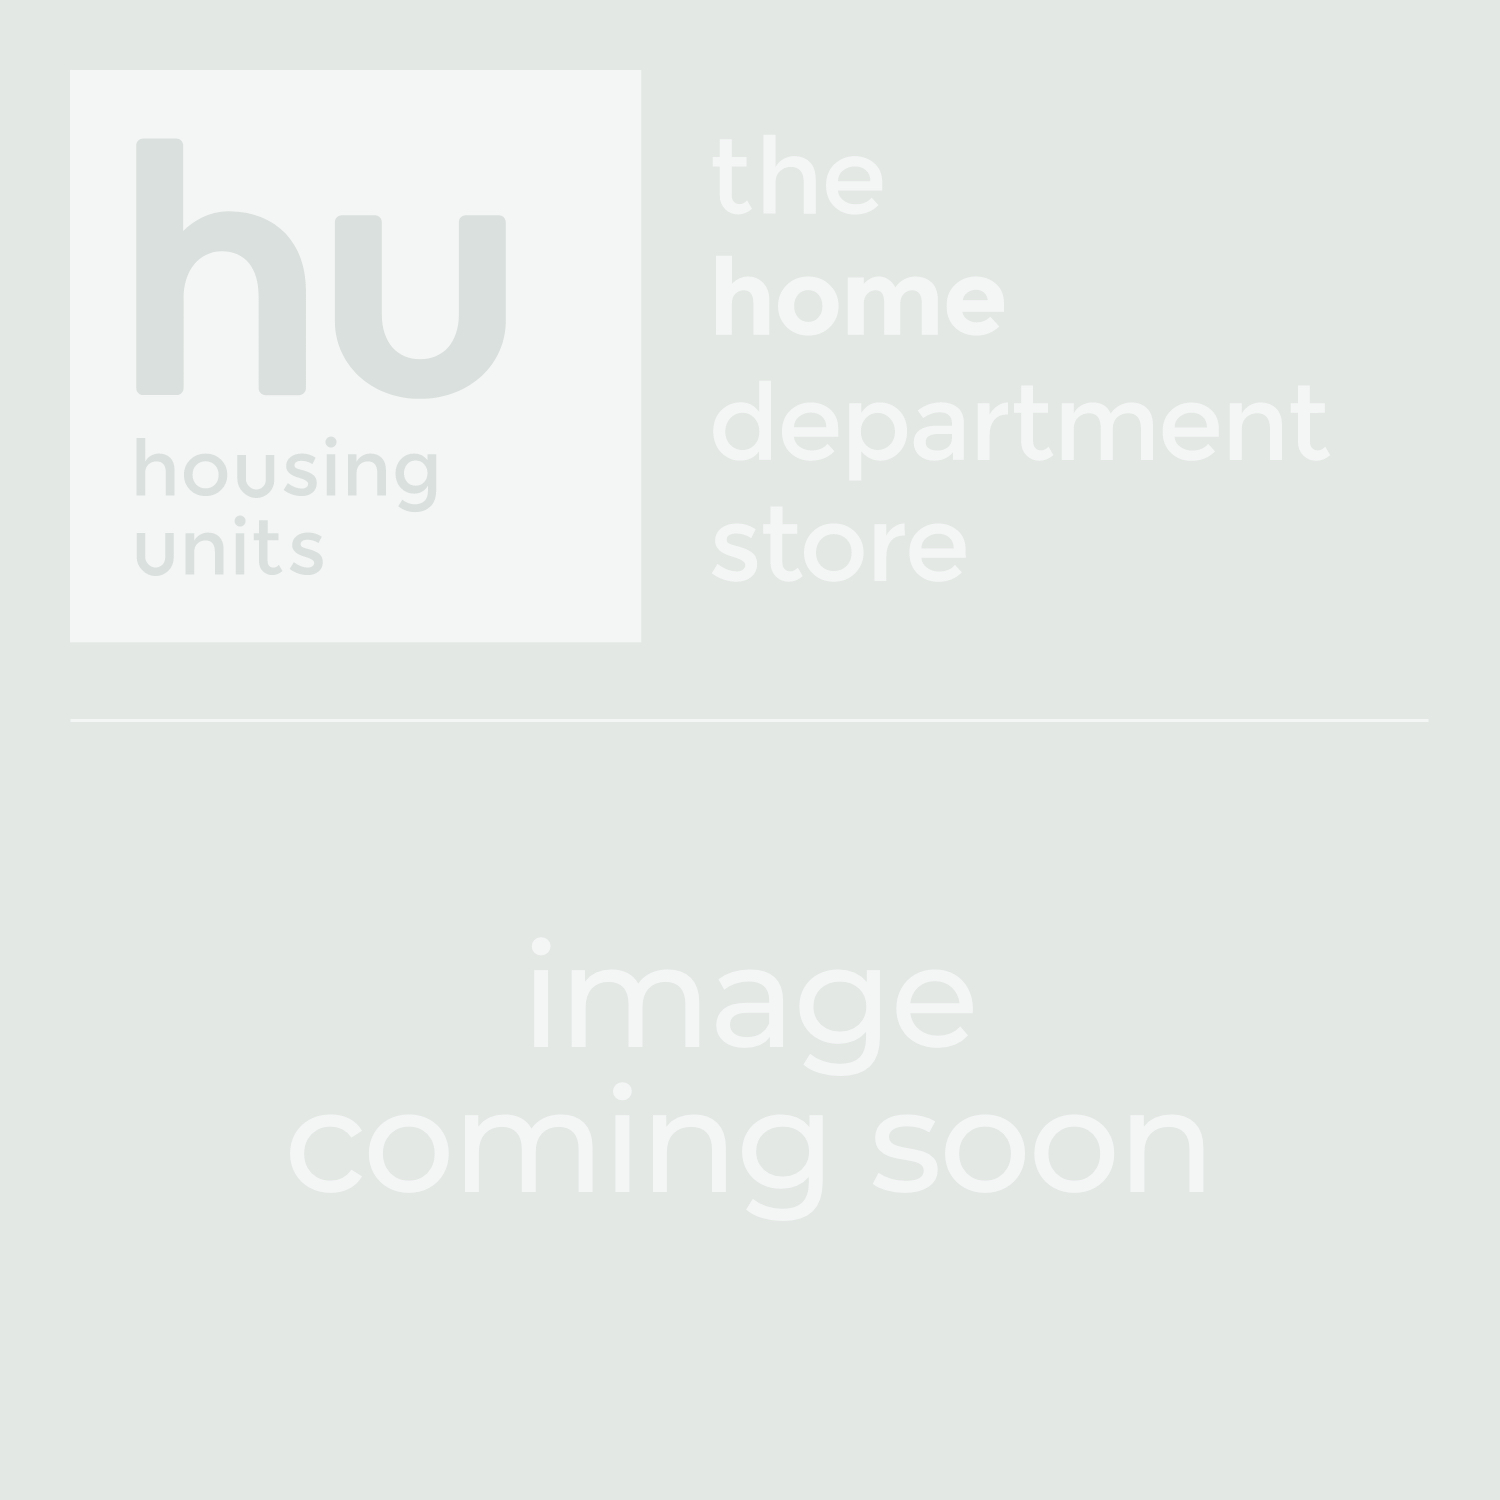 Celine Crystal & Chrome 4 Light Semi Flush Ceiling Light | Housing Units